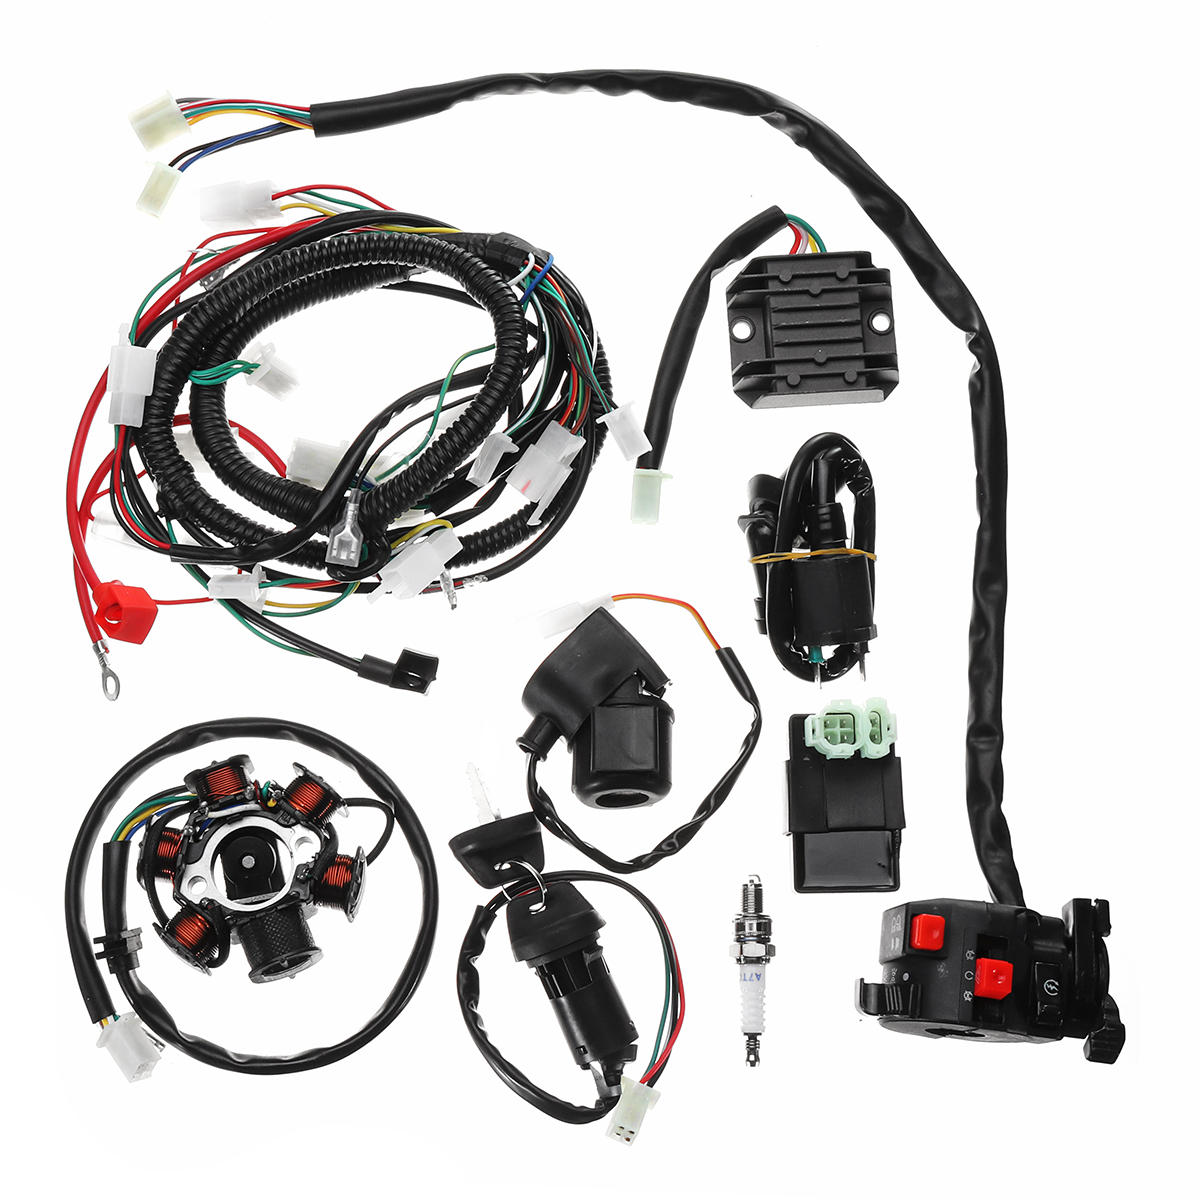 Full Electrics Wiring Harness Loom CDI Coil For GY6 150CC ATV Quad on